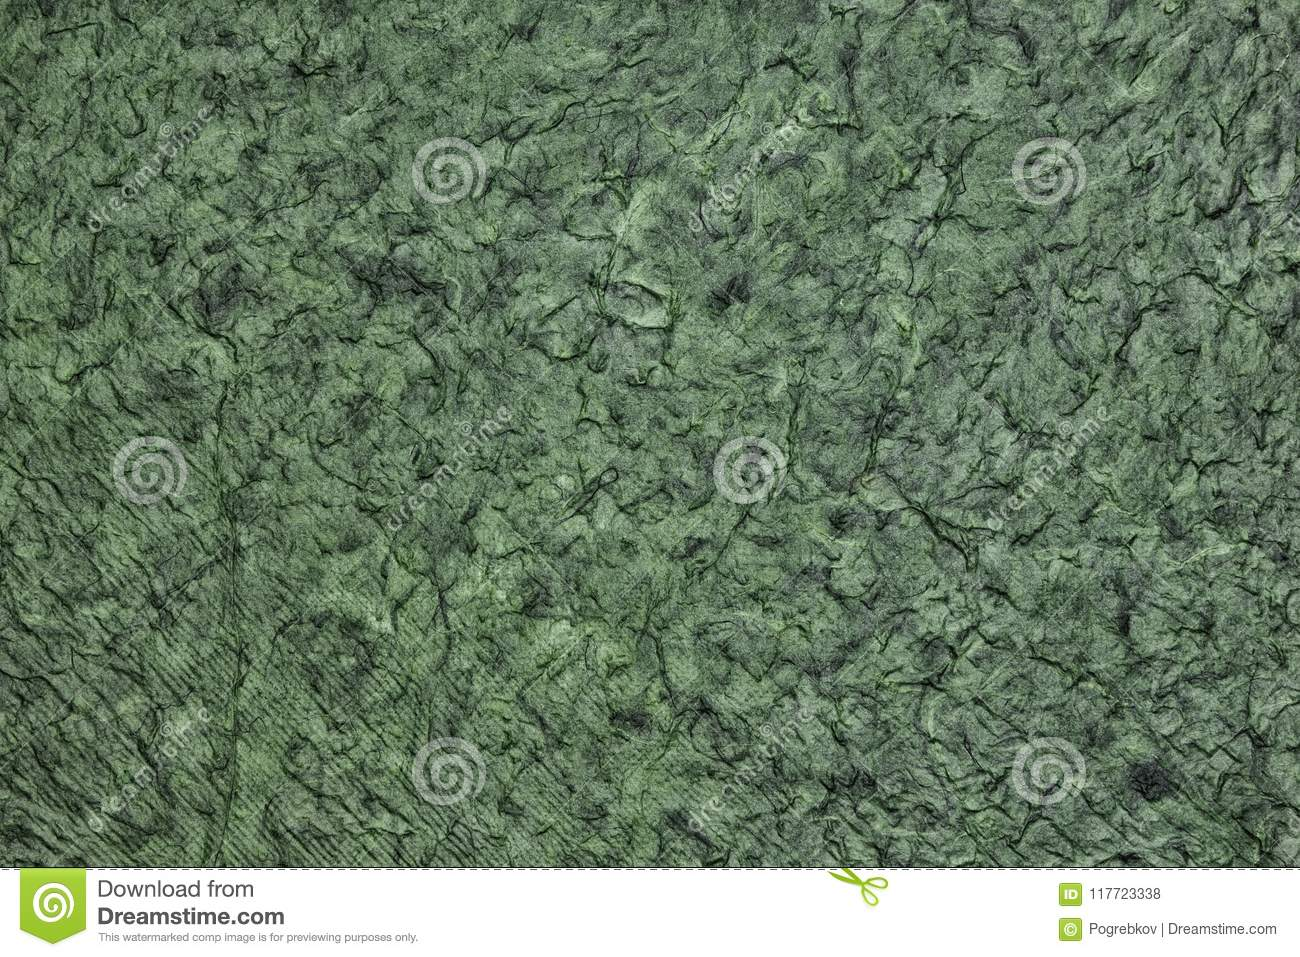 Wrinkled crumpled surface texture - dark green abstract background